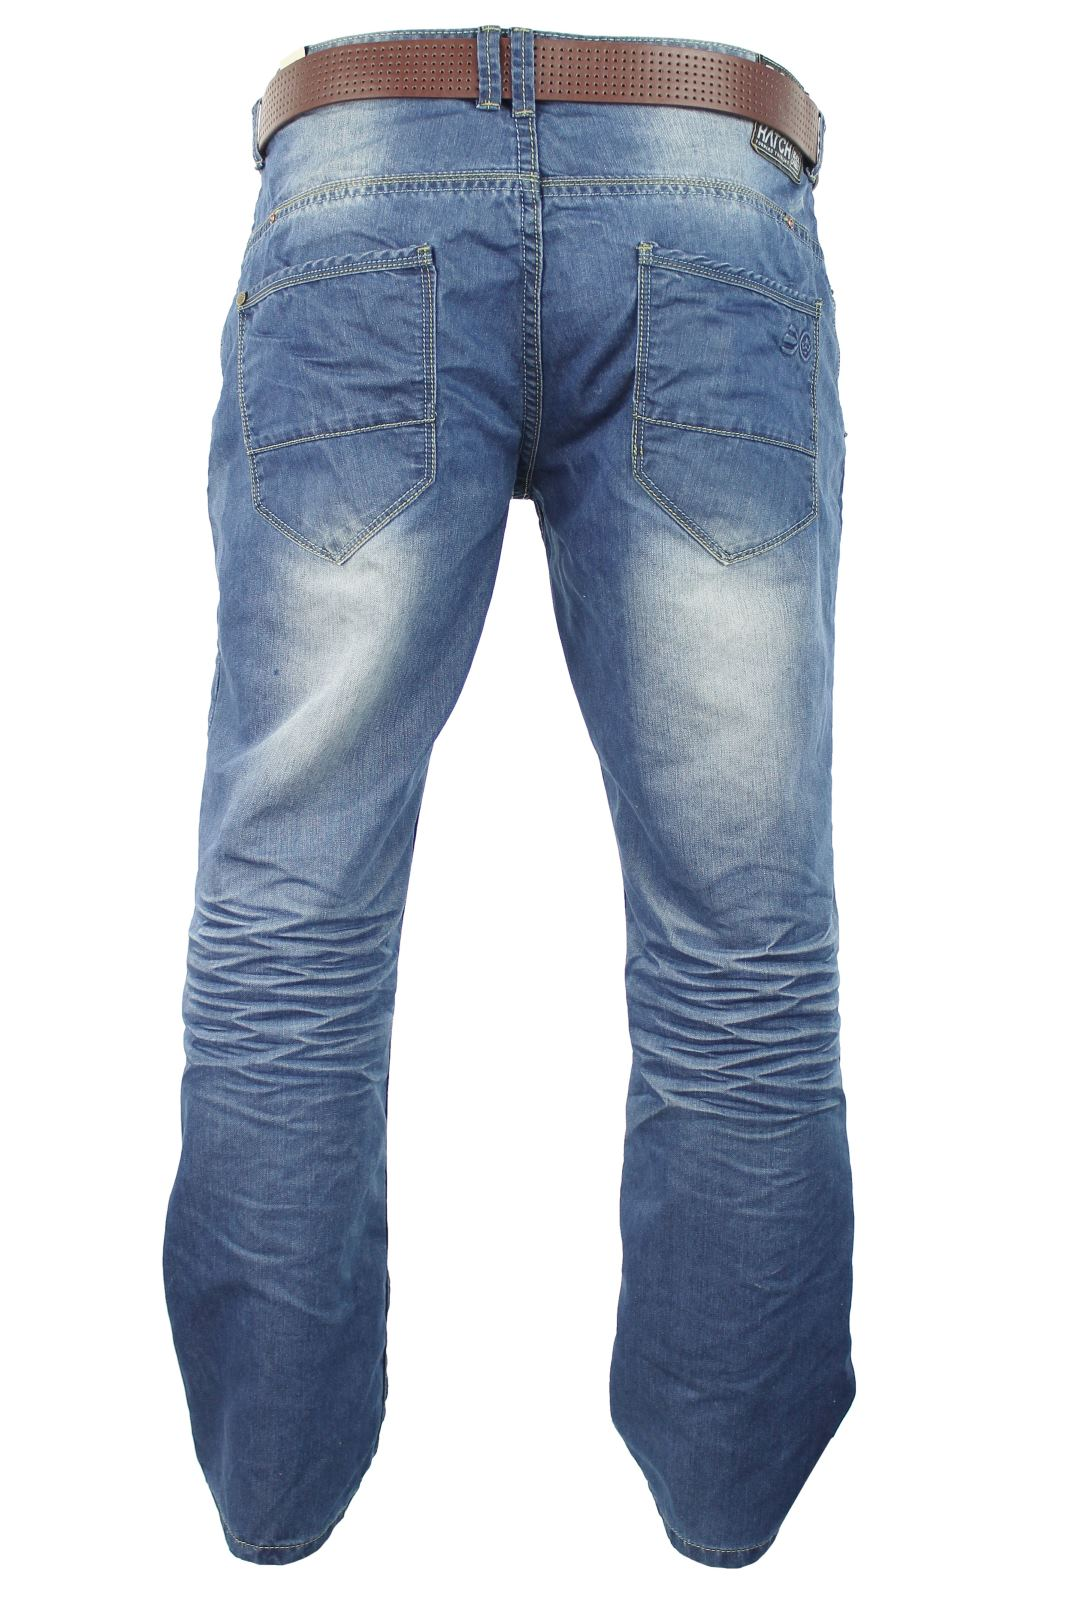 mens crosshatch jeans raw stone washed denim button fly ebay. Black Bedroom Furniture Sets. Home Design Ideas